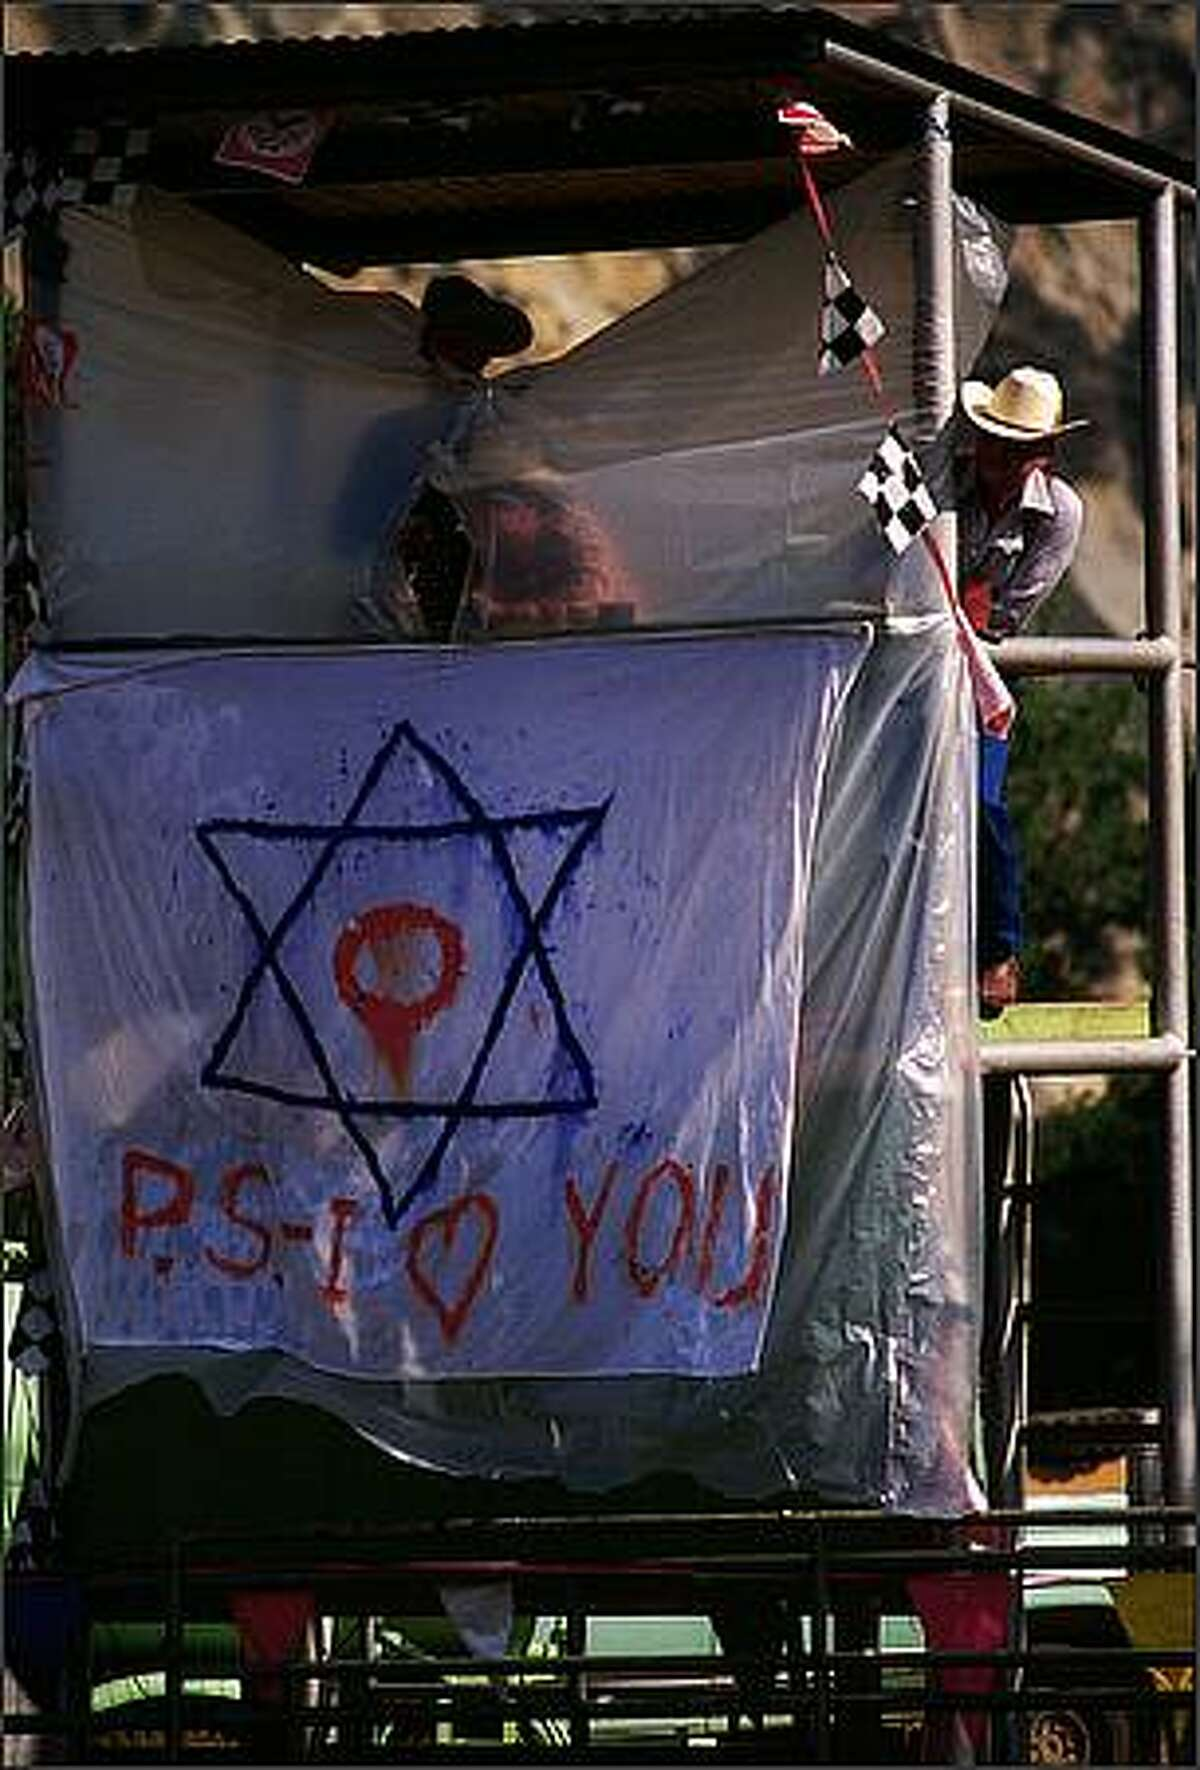 May 9, 1989, Santa Ynez Valley, California: In San Marcos Camp, the Jewish Star of David is prominently displayed on the judge's stand during El Rodeo, the Ranchero cowboy skills competition. The stand is frequently pelted by participating members who disagree with the judges' calls. To protect the judges, it is covered with a thick plastic. The Star of David has been positioned as a distracting target. Photo by: Tomas / Polaris